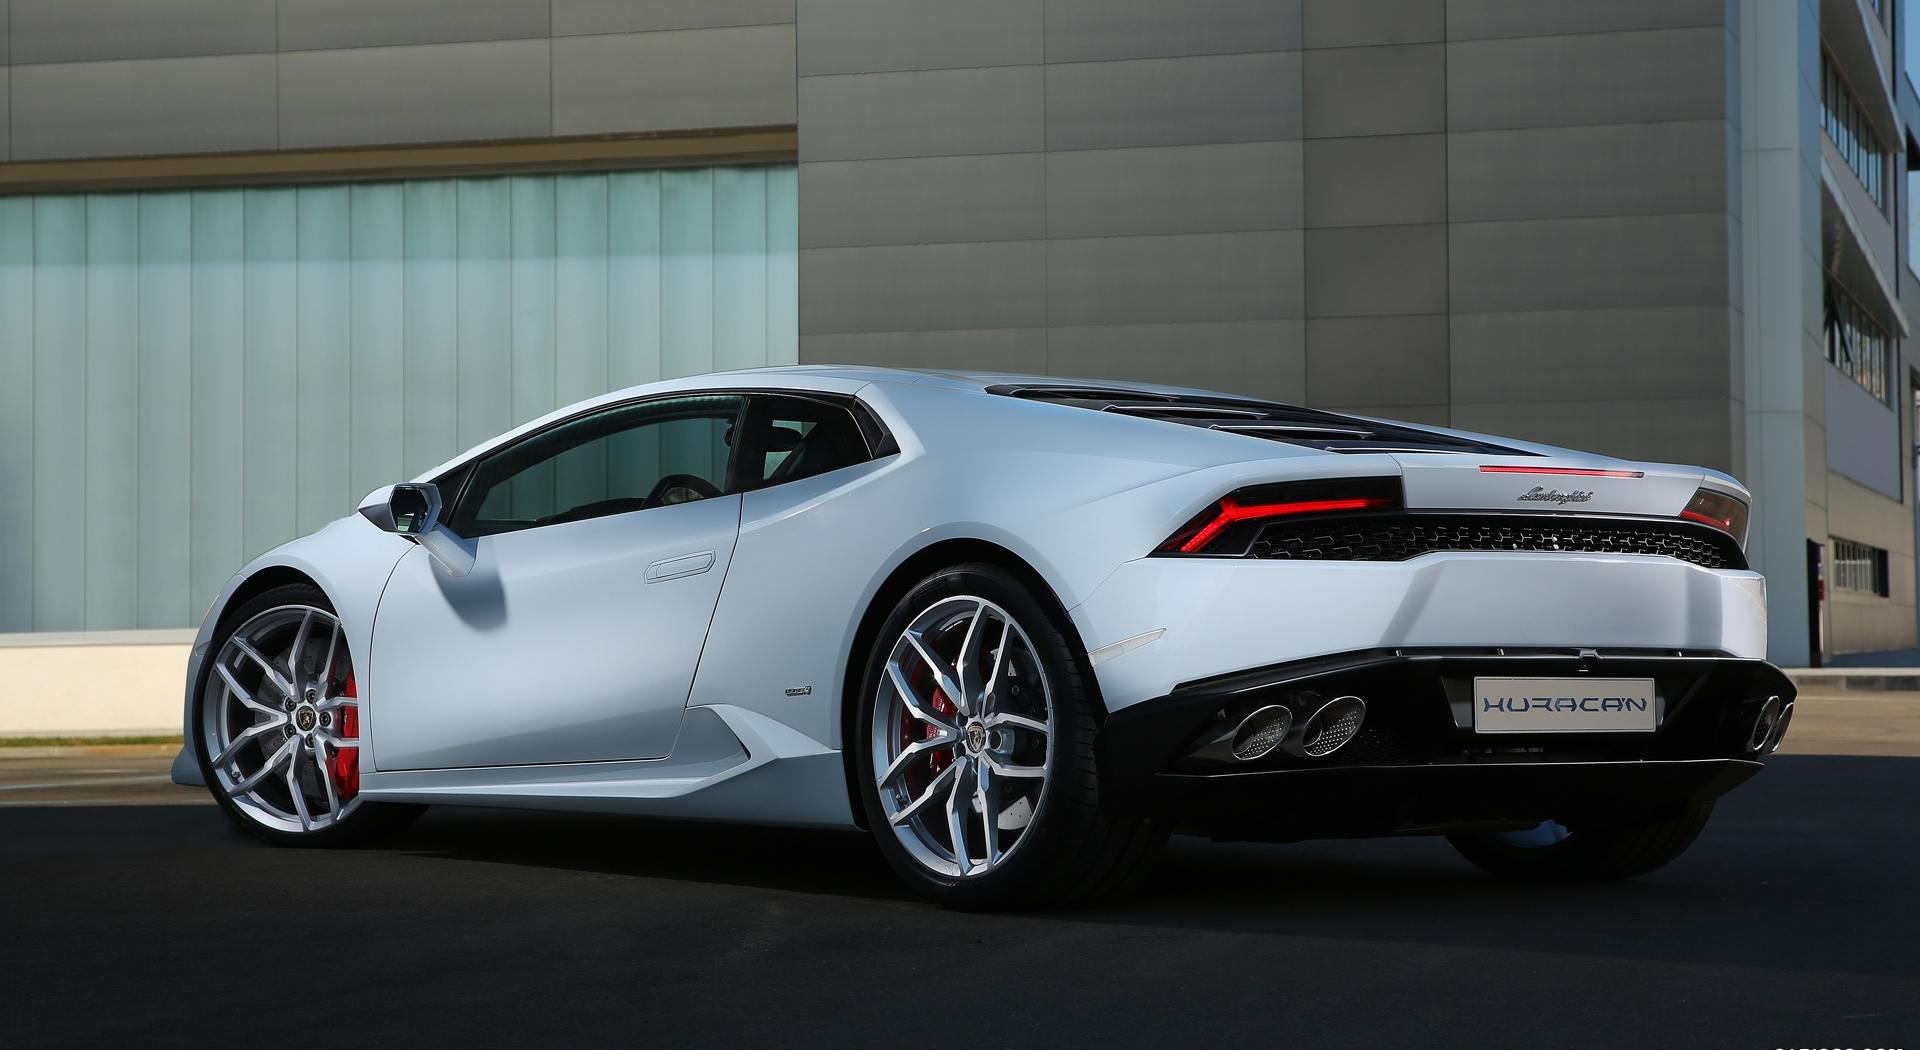 Lamborghini Huracan White Hd Desktop Wallpapers 4k Hd